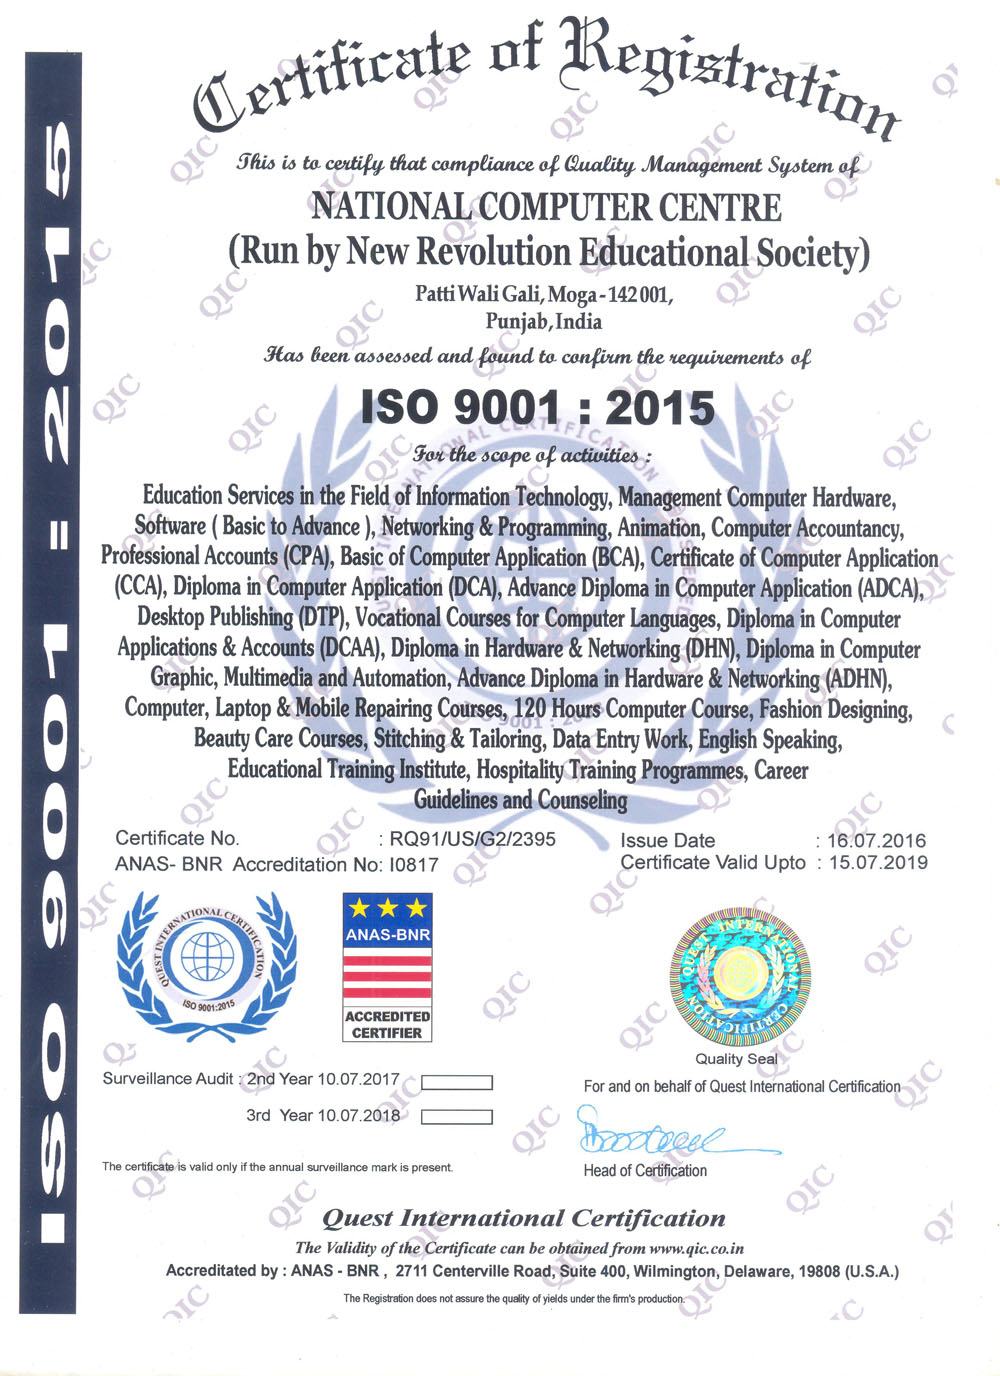 National computer centre ISO 9001:2008 Certified | Computer Centres ...